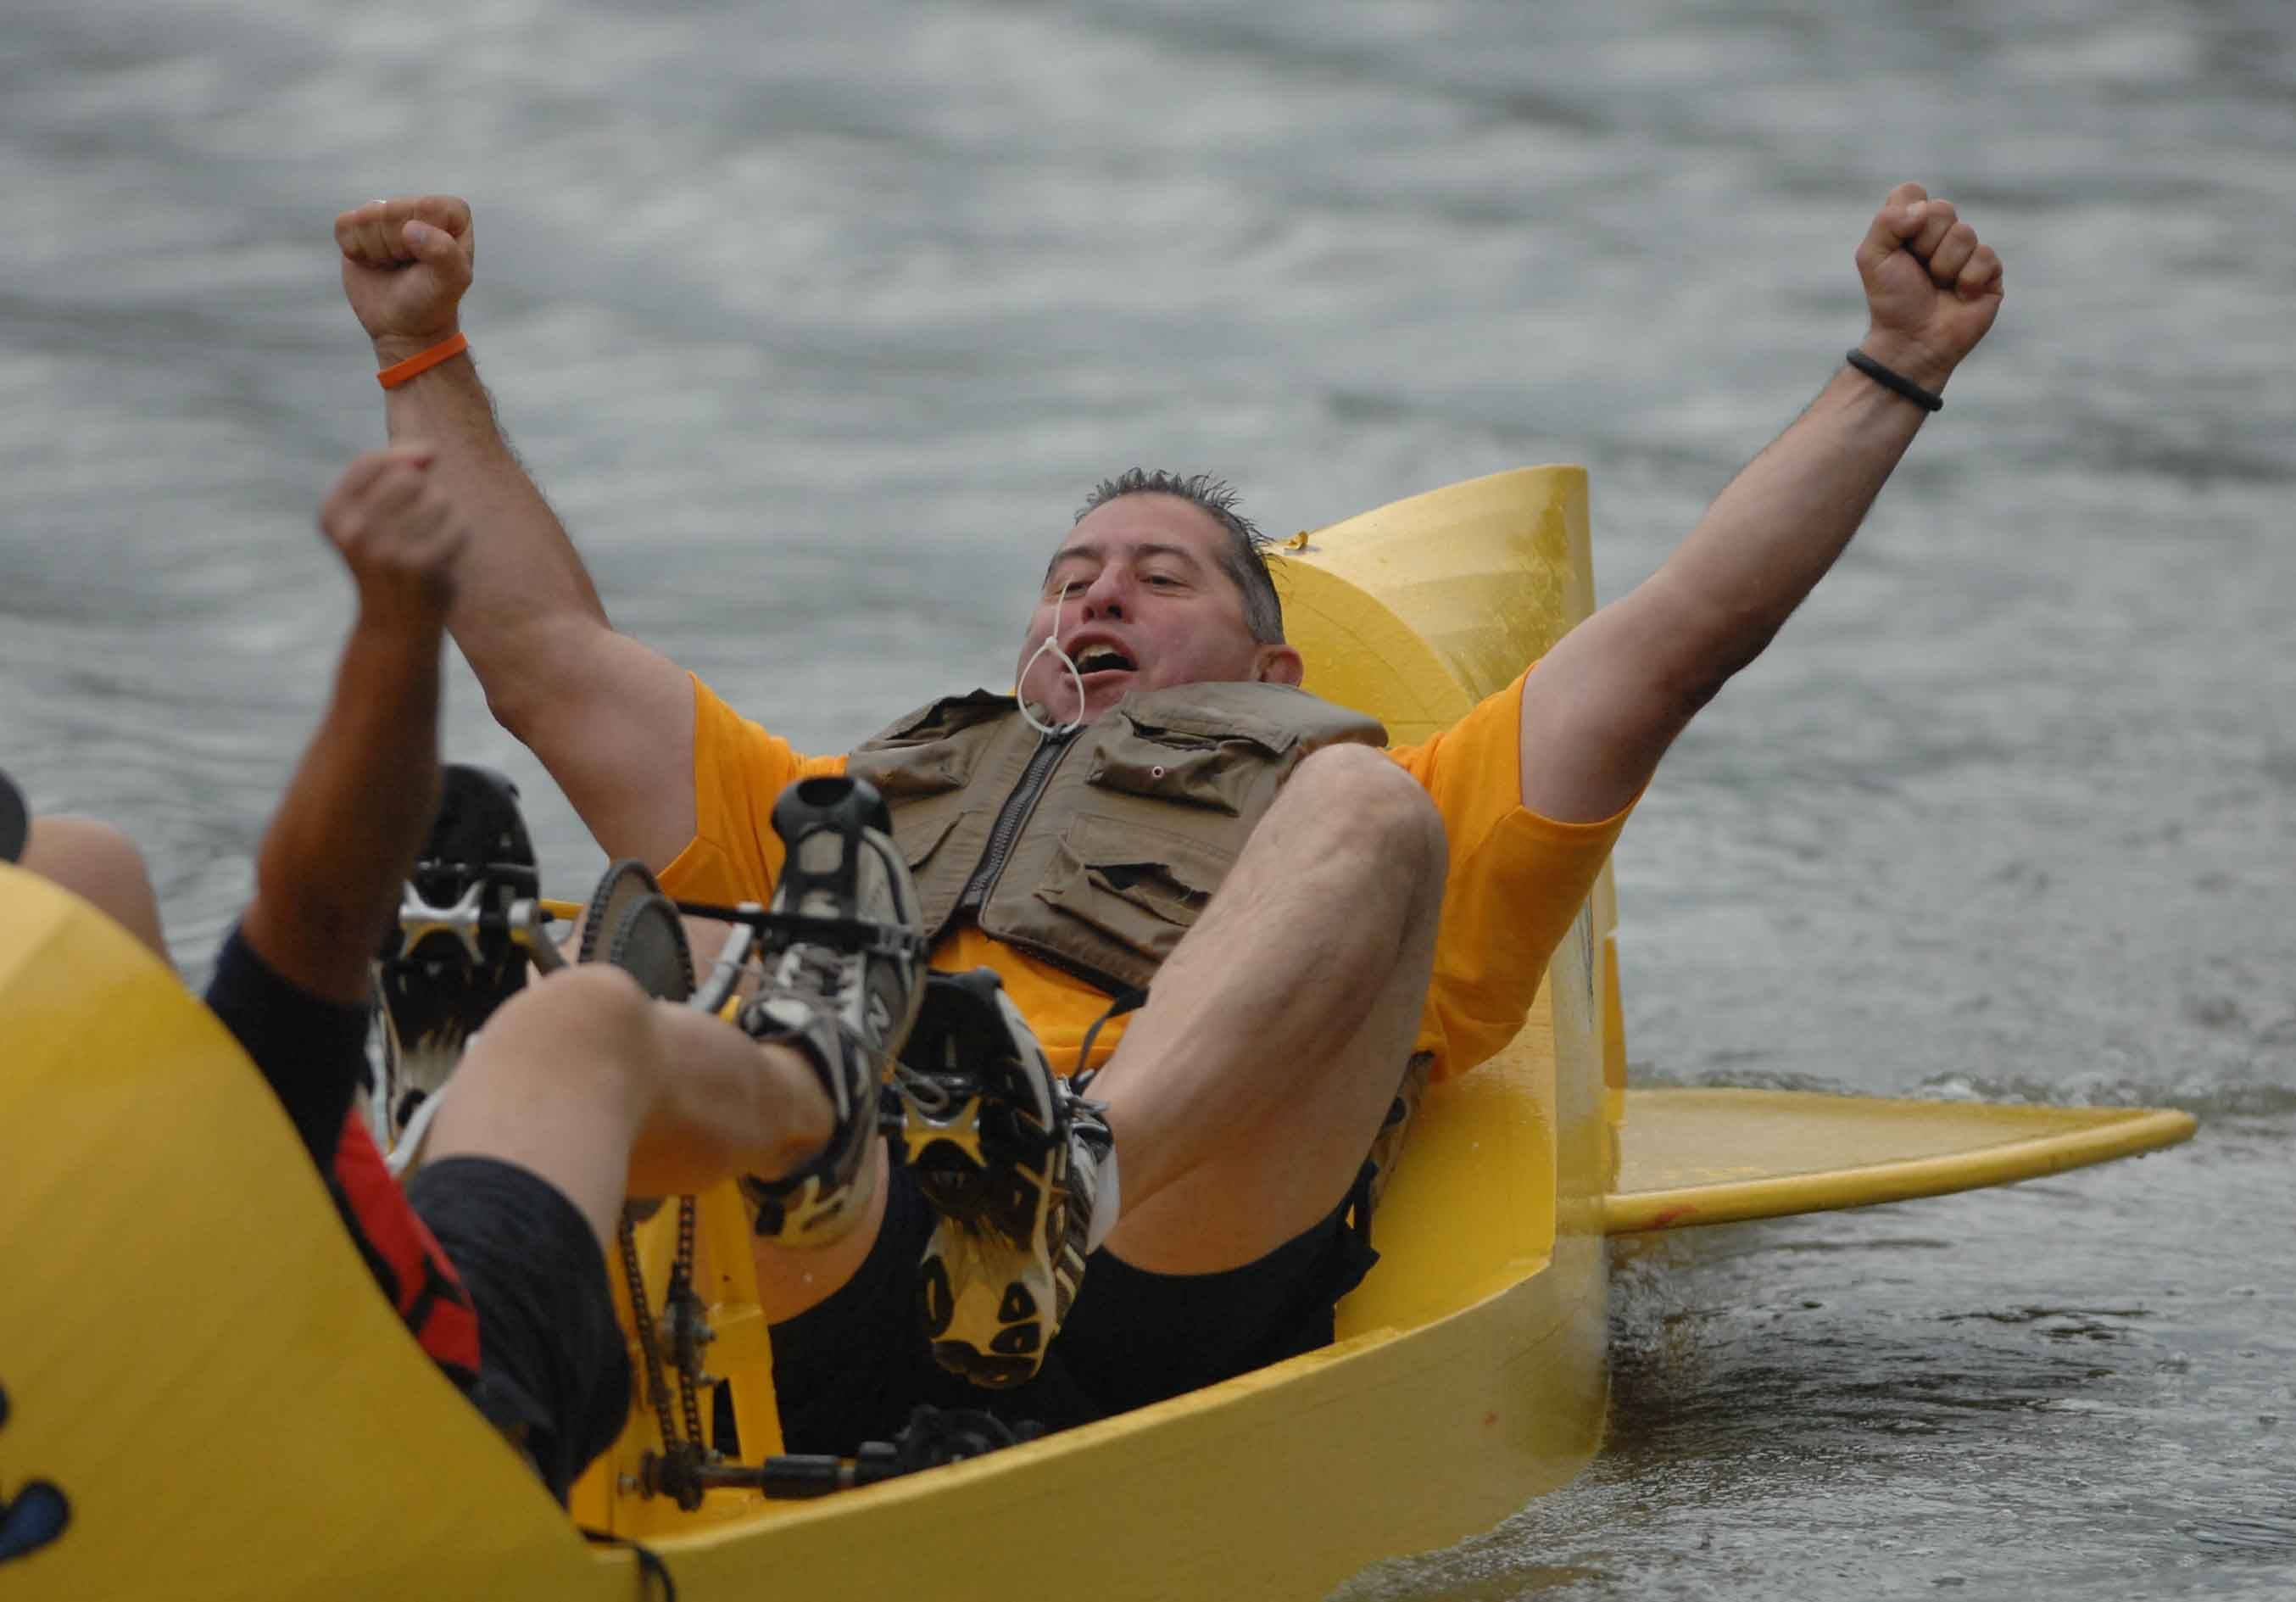 Kane County Sheriff Pat Perez throws his arms up in victory during the Fox Valley United Way's ninth annual What Floats Your Cardboard Boat Race Saturday on Mastodon Lake in Aurora's Phillips Park.